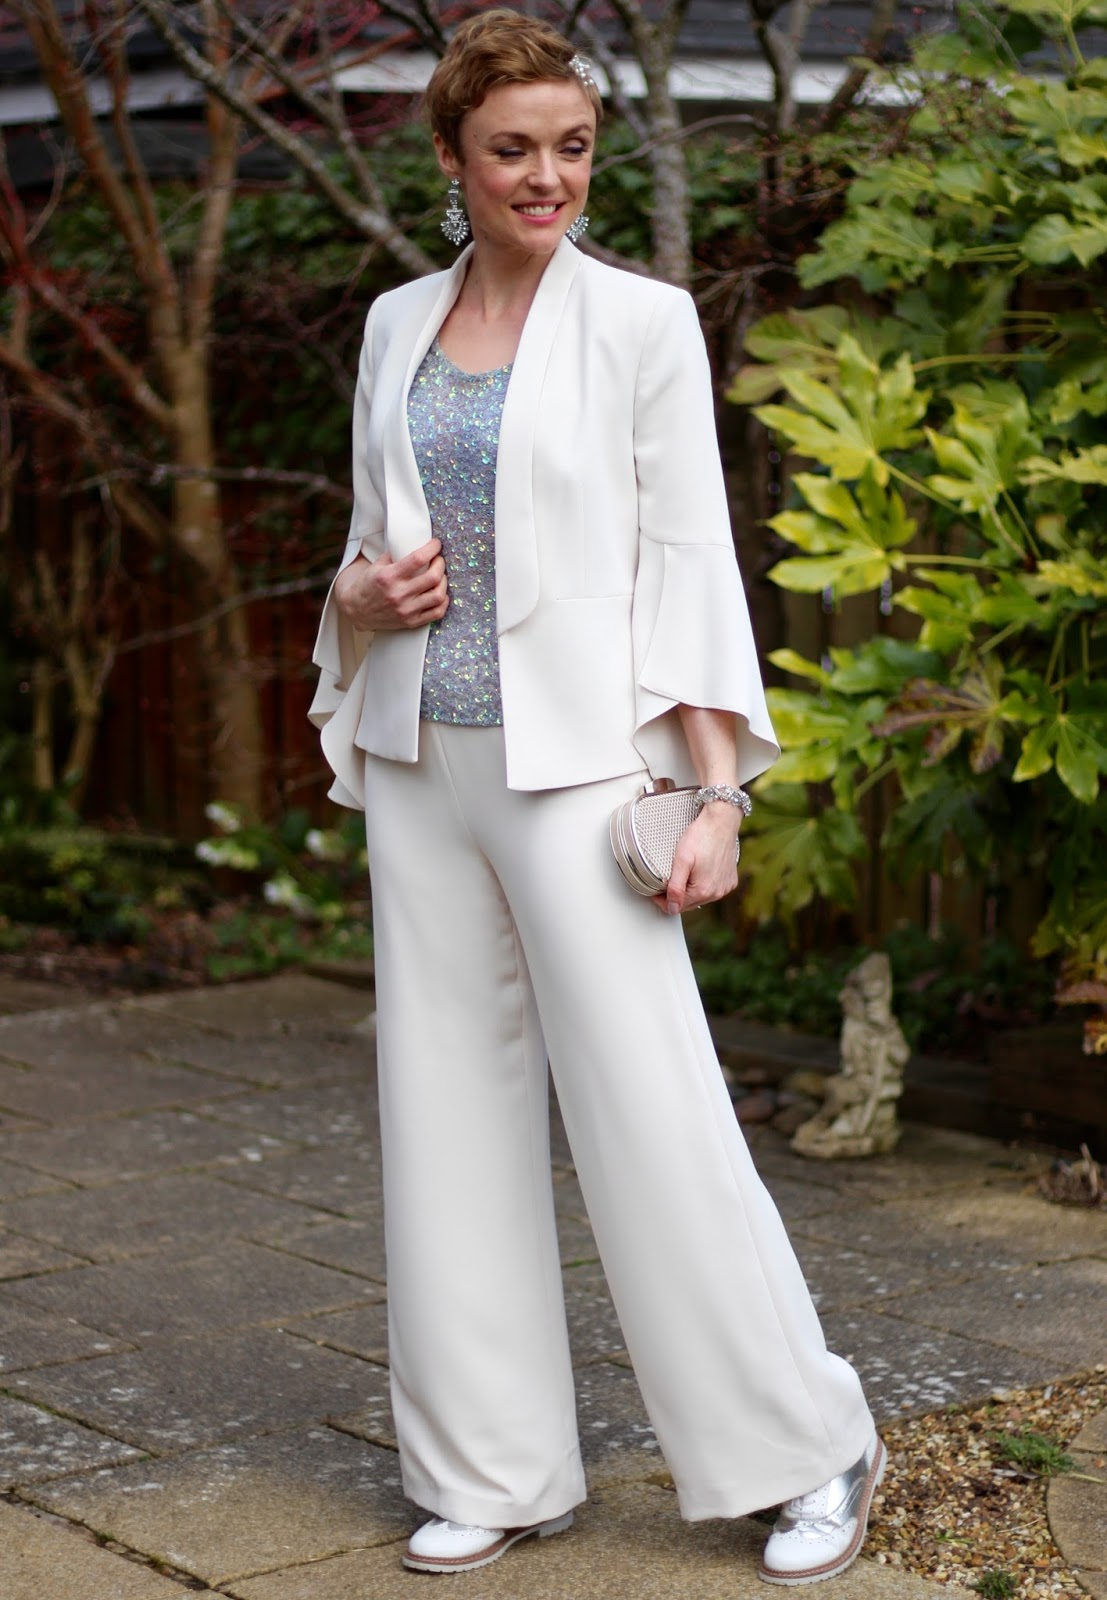 Cream suit and Sparkles | Wedding Bride Trouser Outfit, over 40